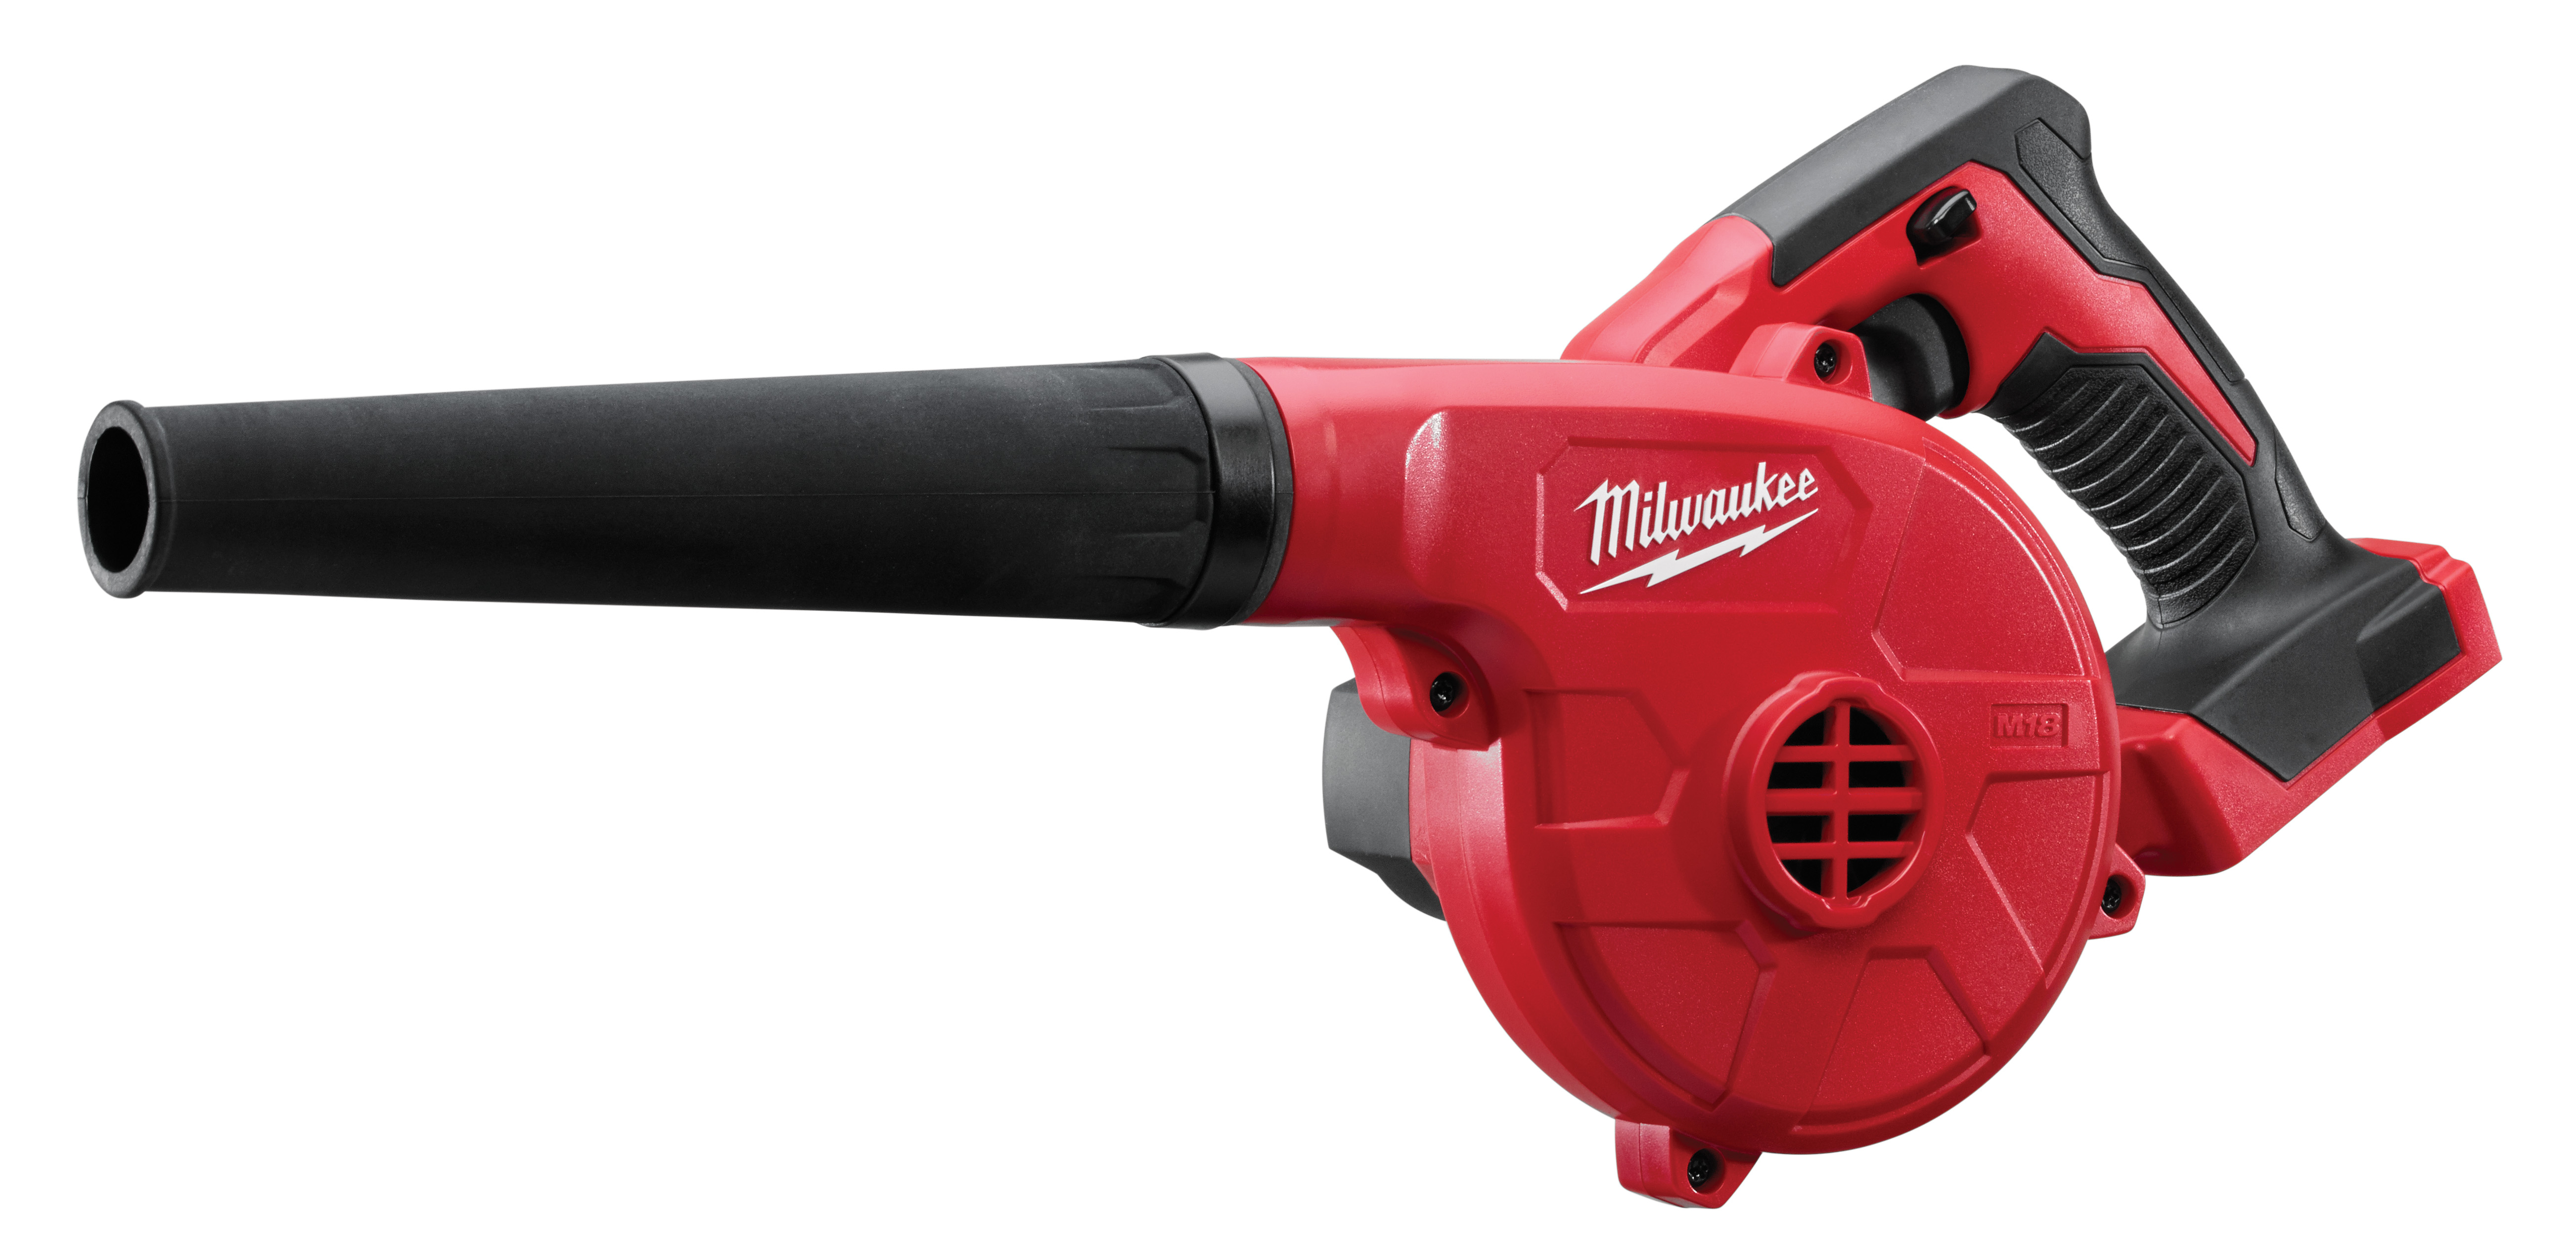 Milwaukee® M18™ 0884-20 Compact Blower, 160 mph Air Flow, 18 VDC Lithium-Ion Battery